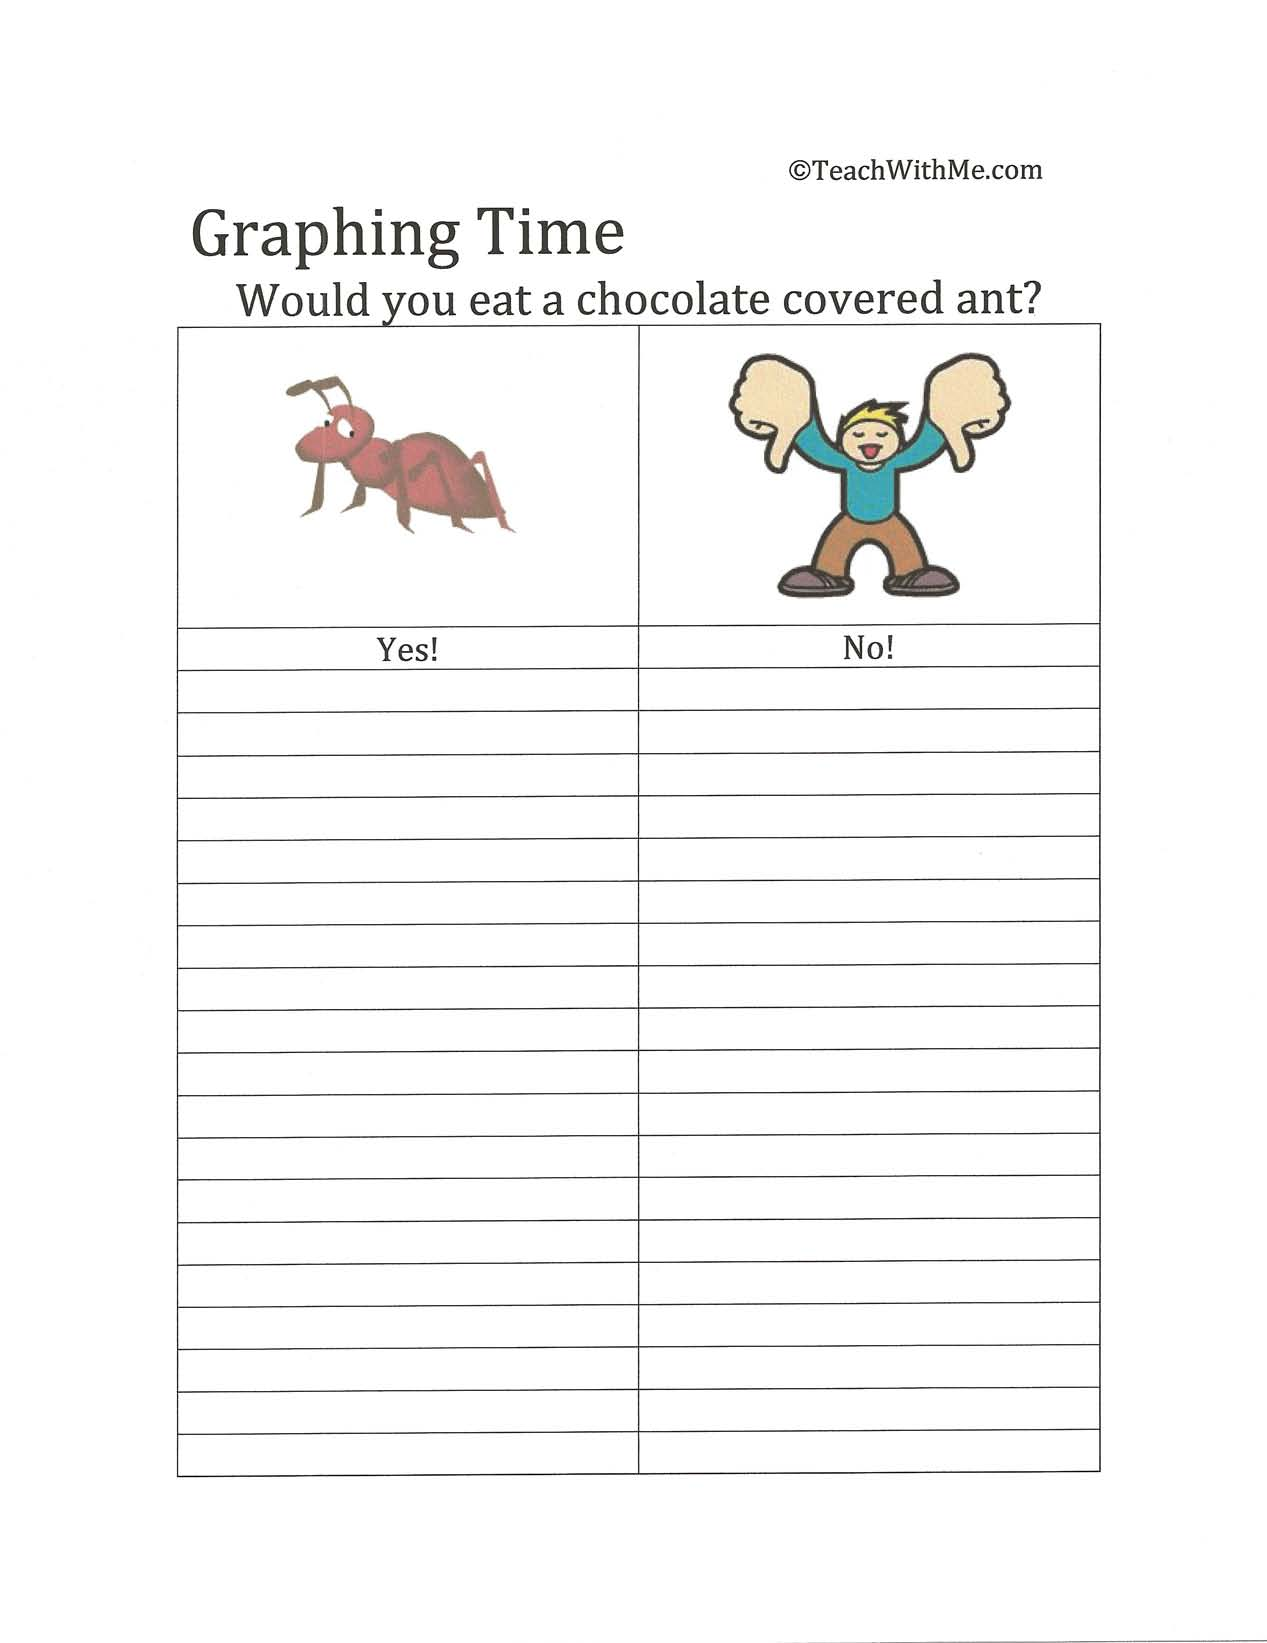 ant graph, ant activities, ants, 100 day activities, 100 day ideas, 100 day centers, 100 day math activities, 100 day certificates, 100 day bulletin board ideas, 100 day bulletin boards, 100 day booklet, 100 day necklace, counting by 10's to 100, counting by 5's to 100, ant project, ant centers, ants in your pants,